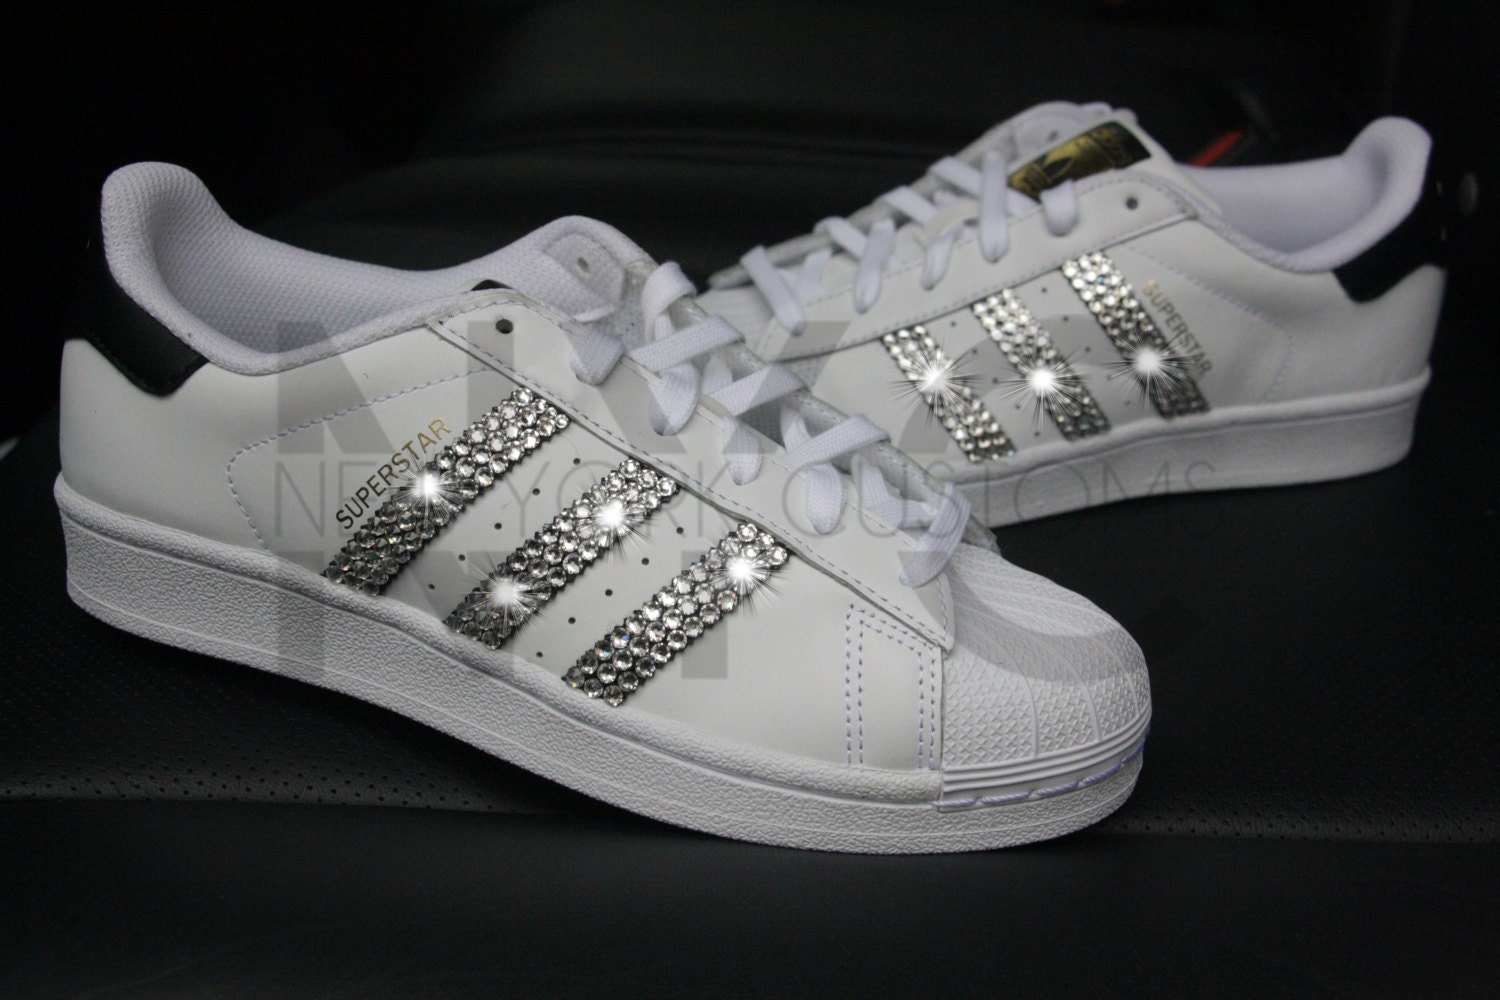 Adidas Strass Adidas Adidas Adidas Superstar Superstar Strass Superstar Superstar Strass Strass Strass Adidas Superstar Superstar wBRgxOqRC